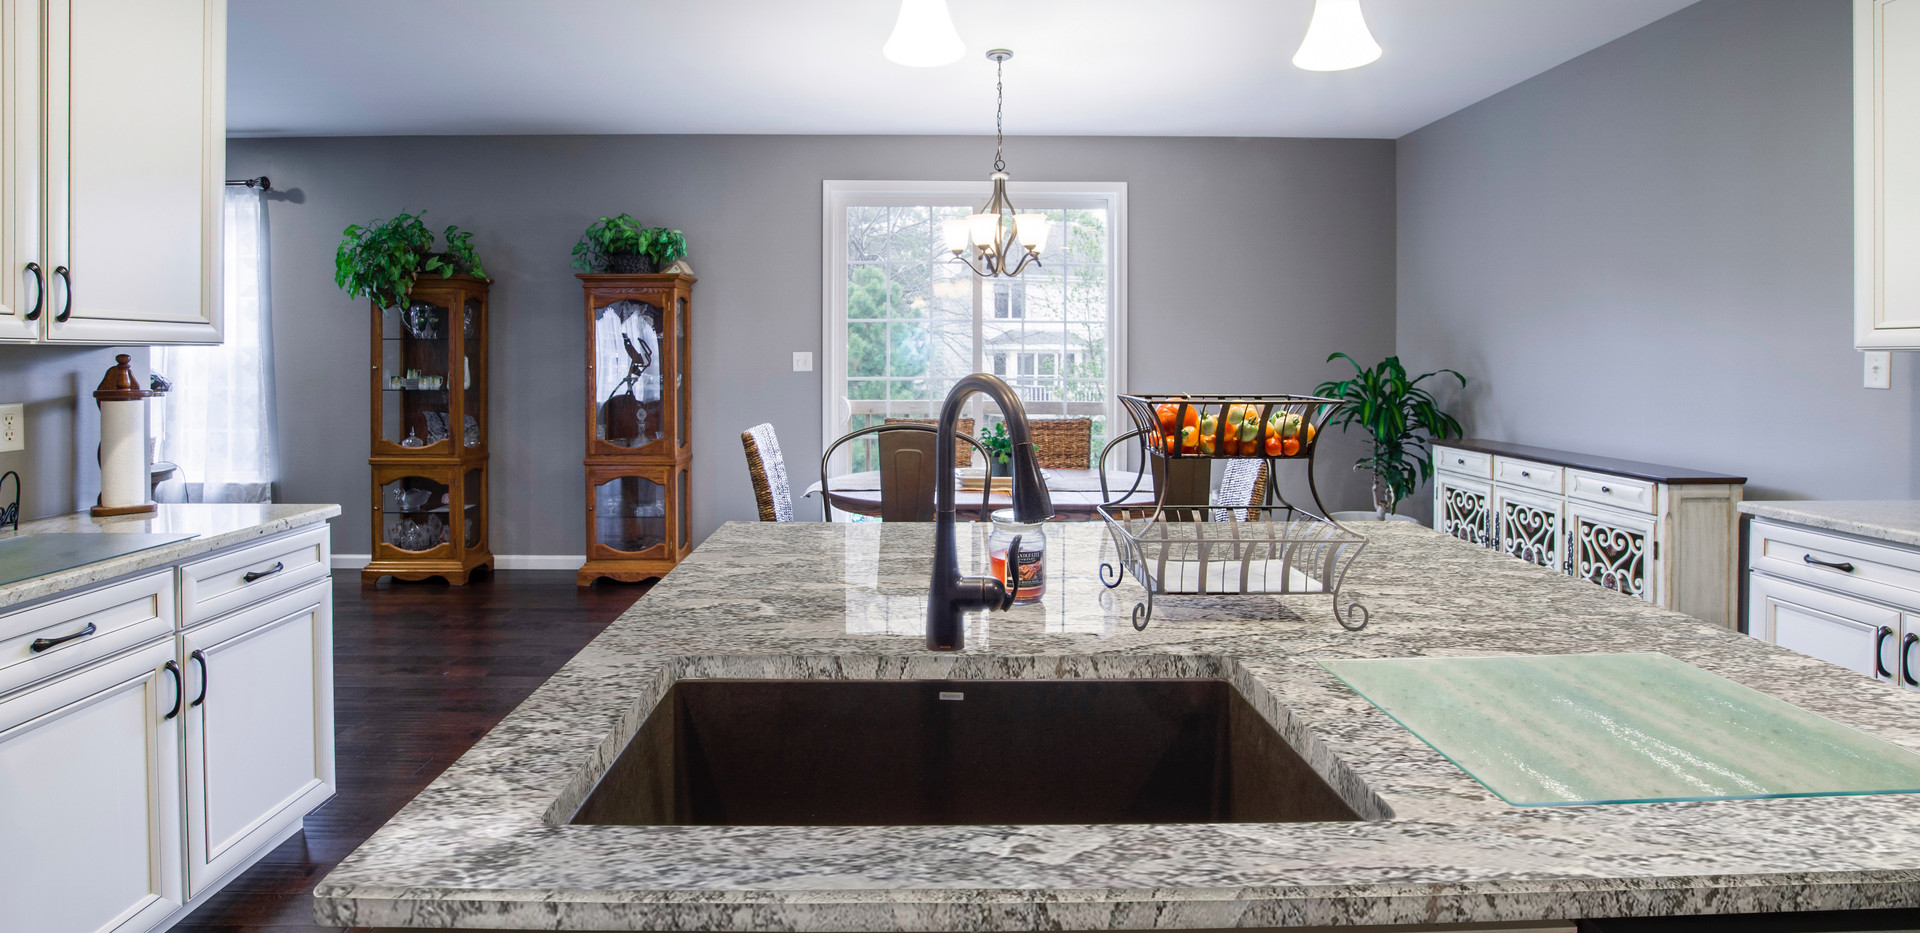 Magnific White Granite countertop